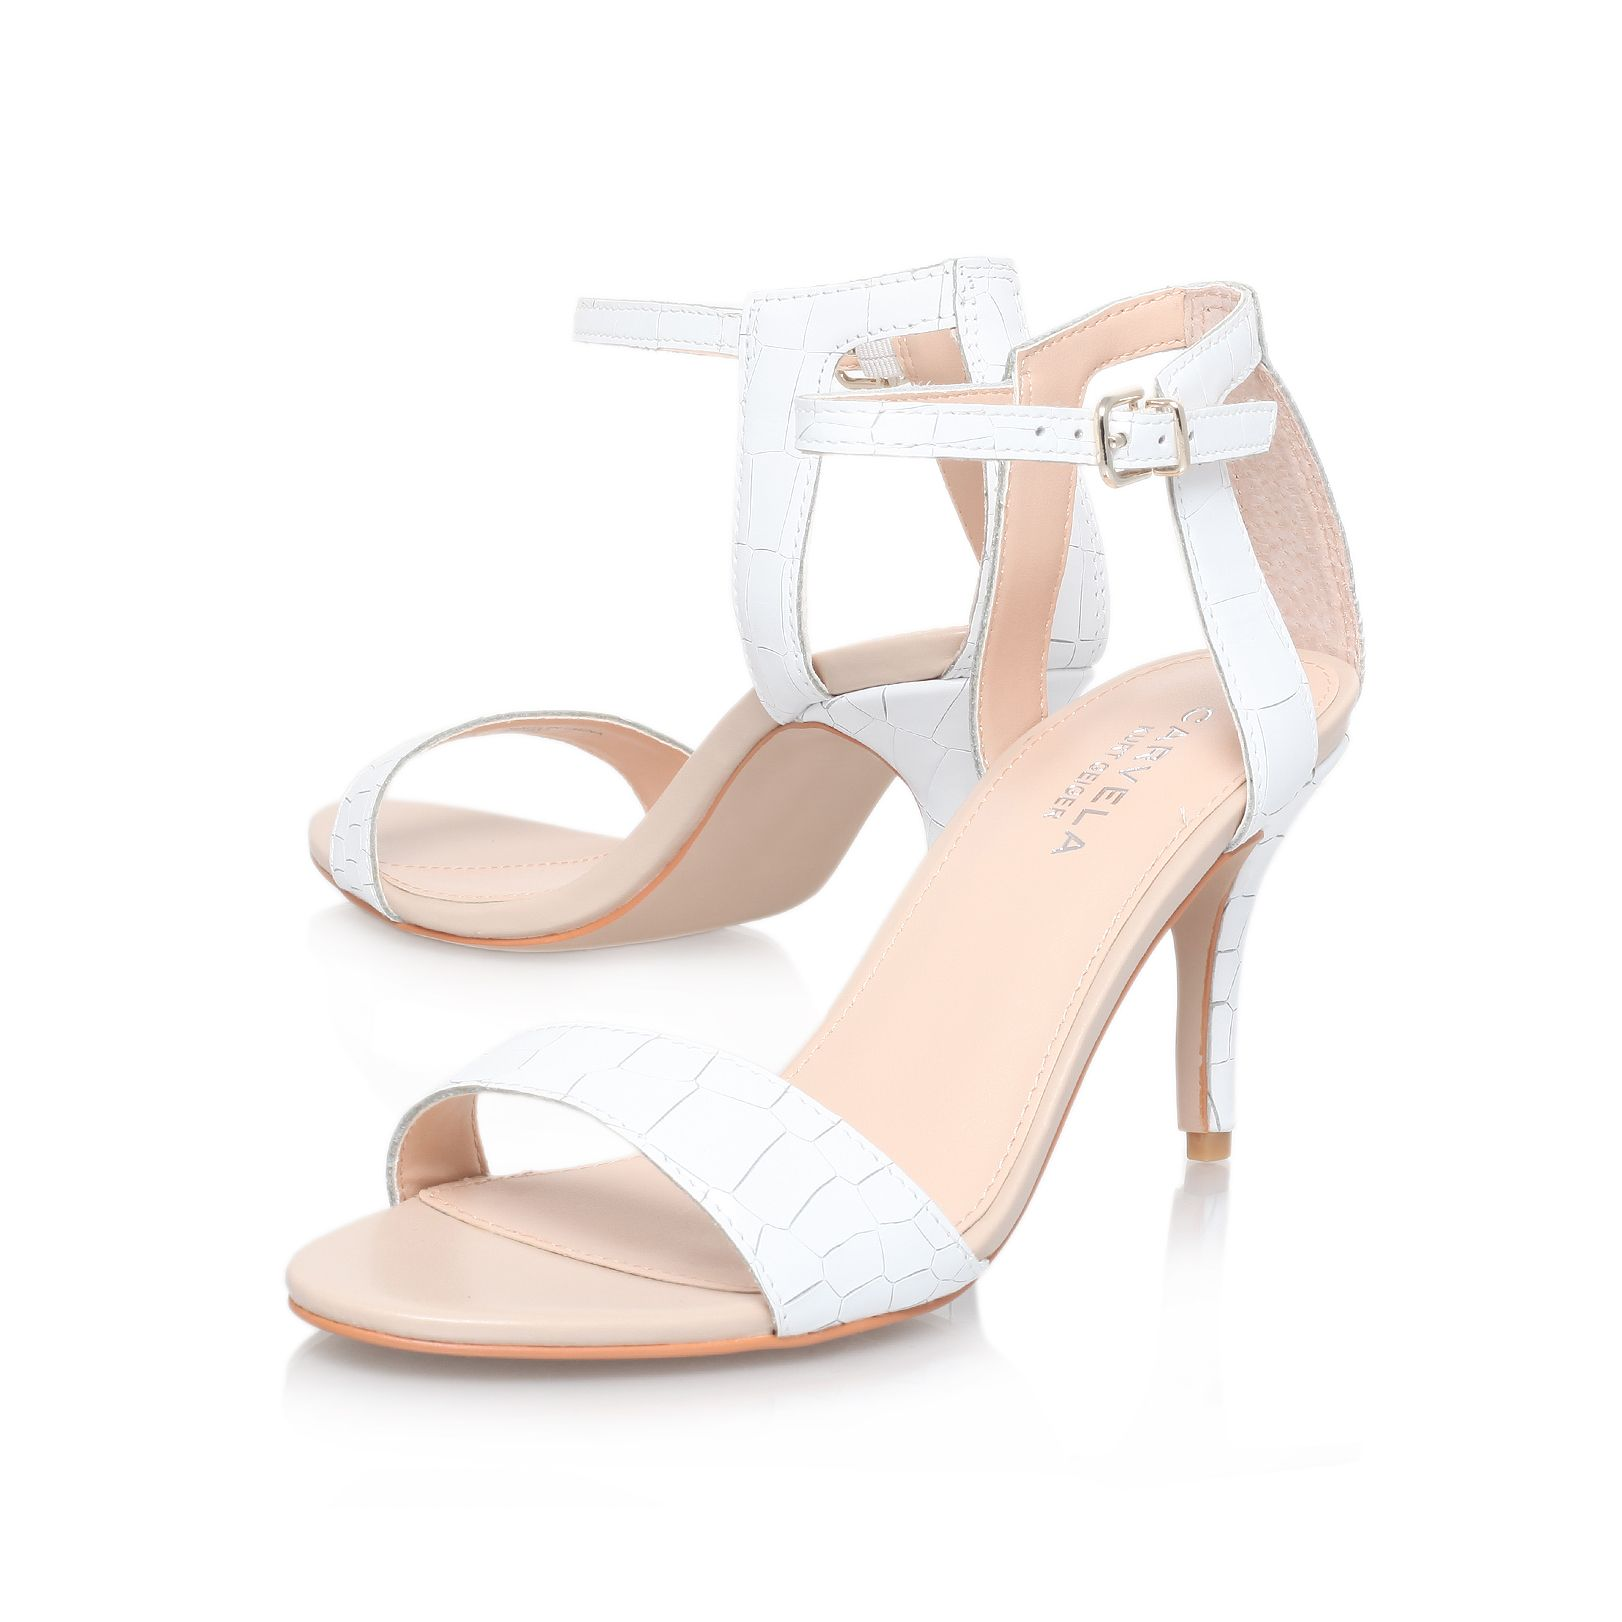 White Sandals With Heel